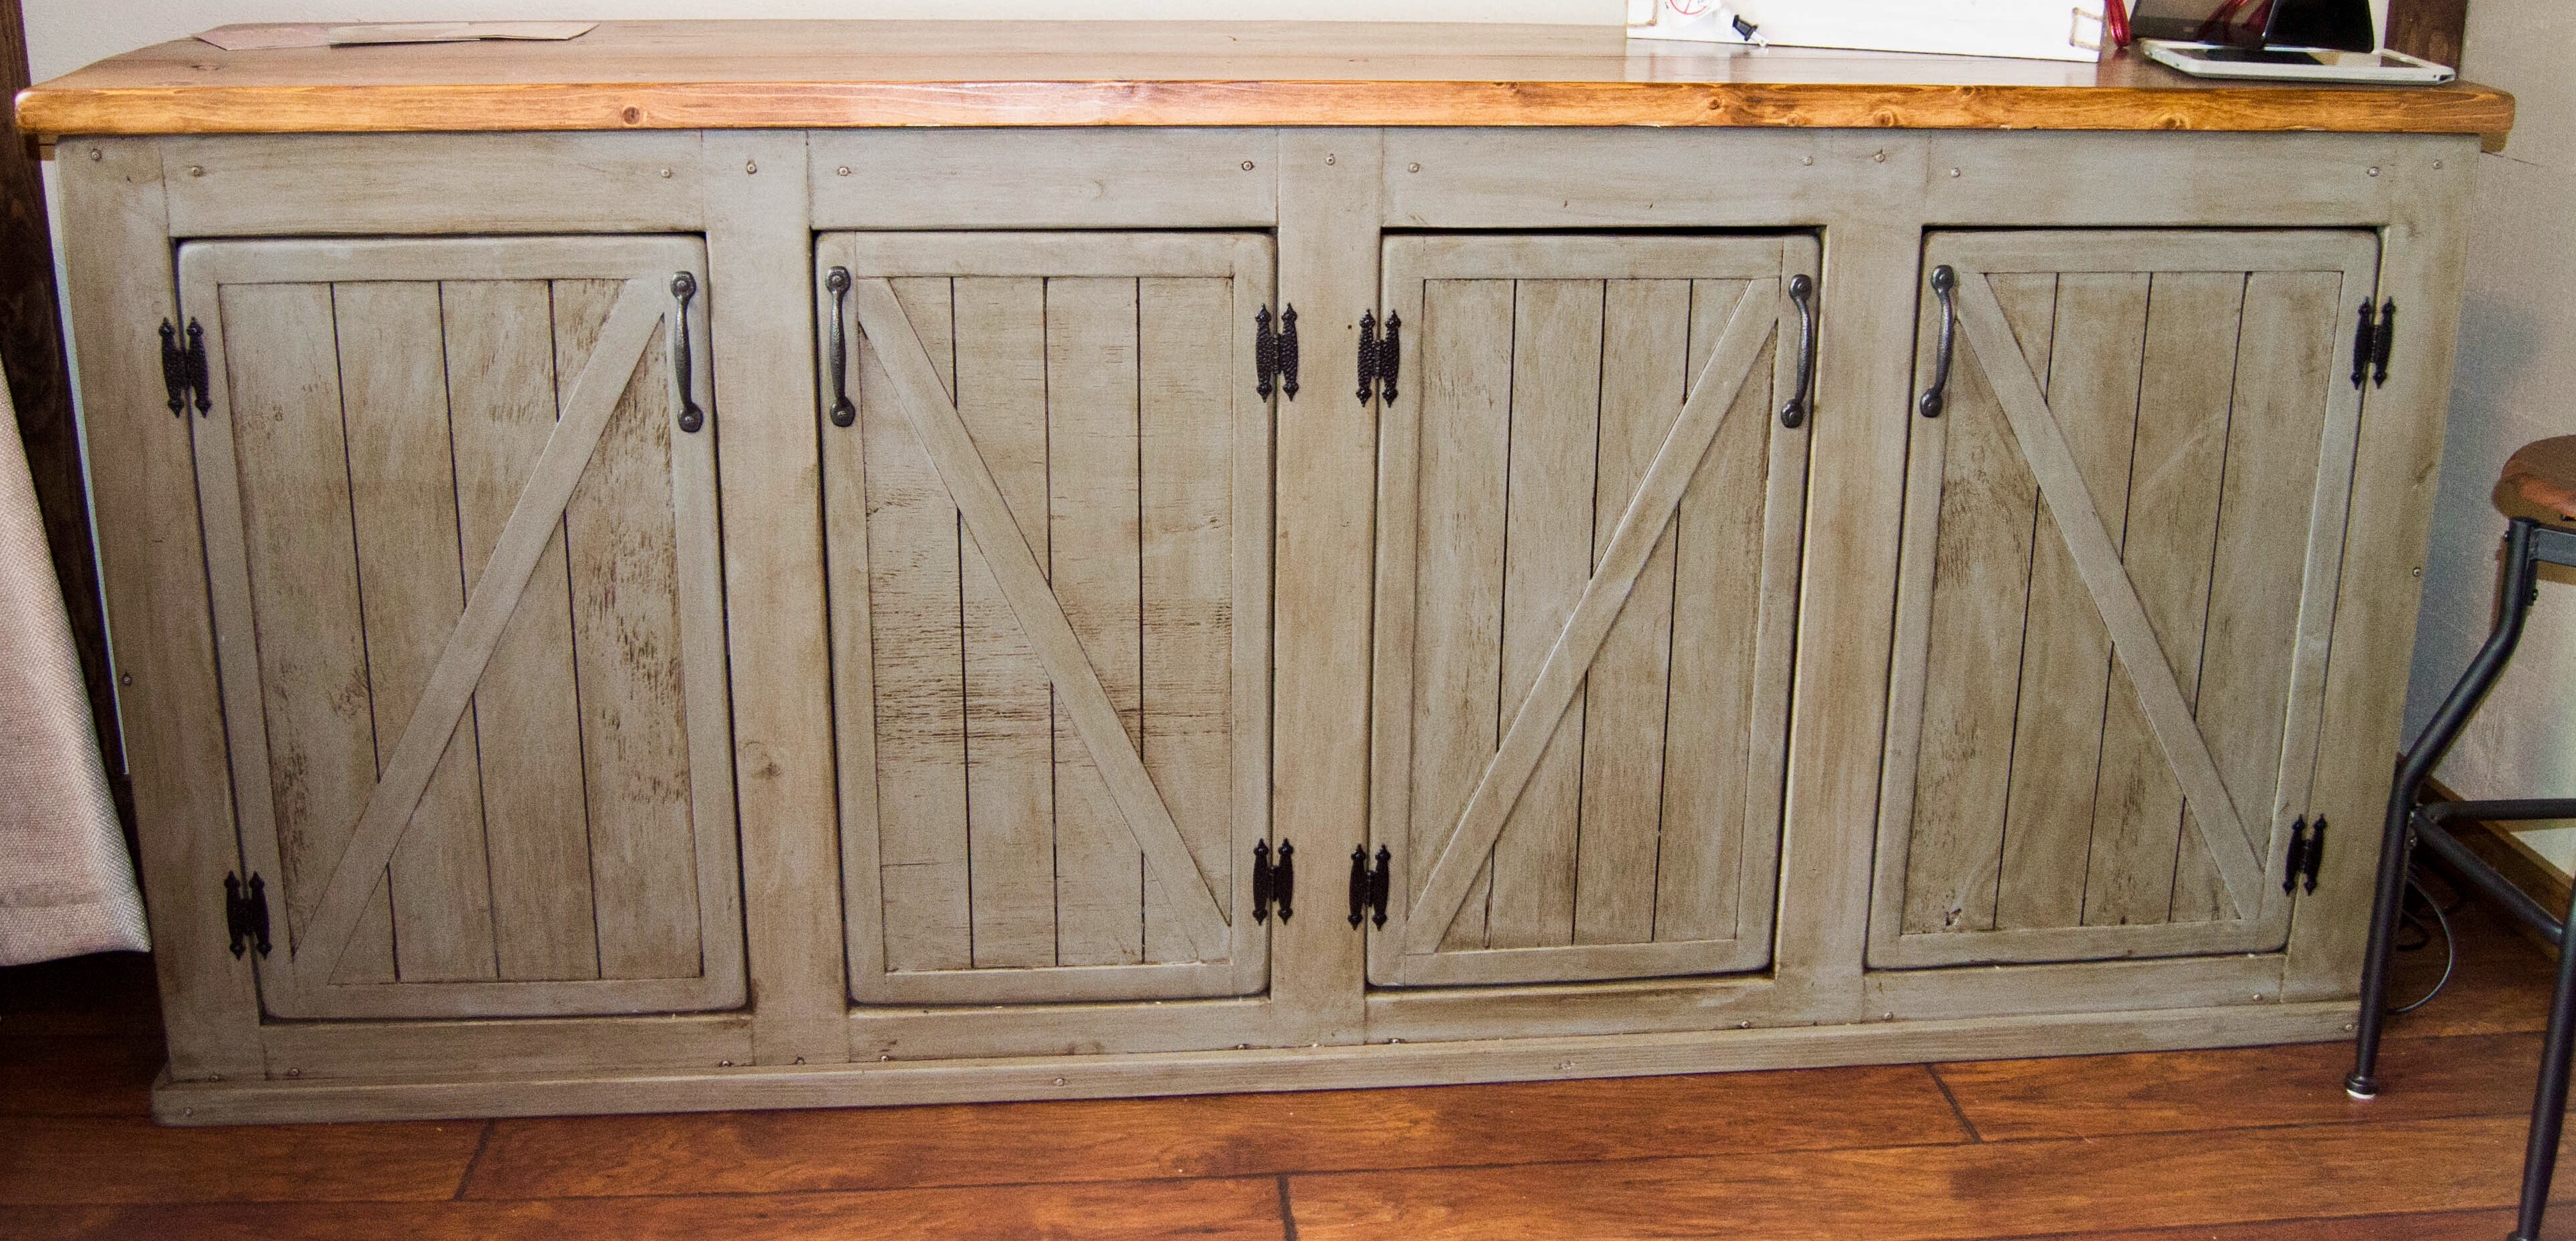 rustic barn cabinet doors. Additional Photos: Rustic Barn Cabinet Doors C